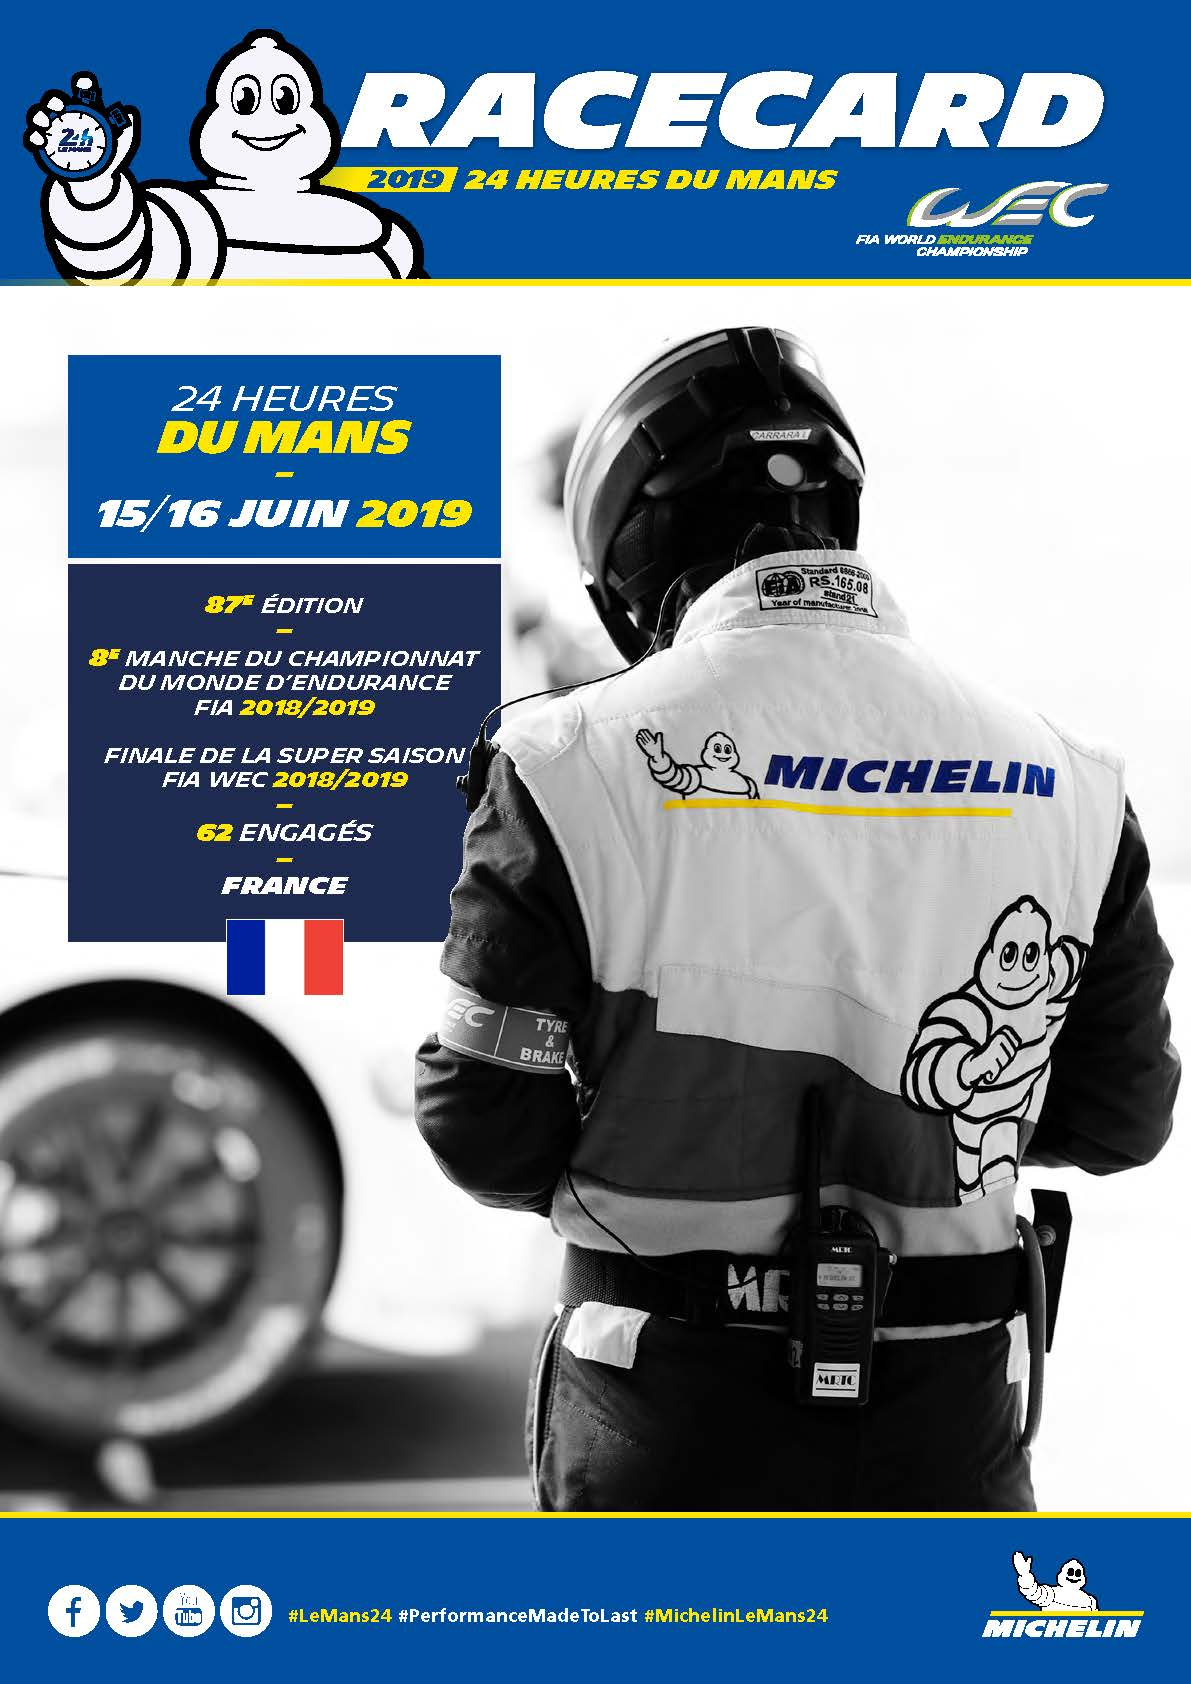 Michelin_Racecard_WEC_LeMans_2019_FR_Page_01